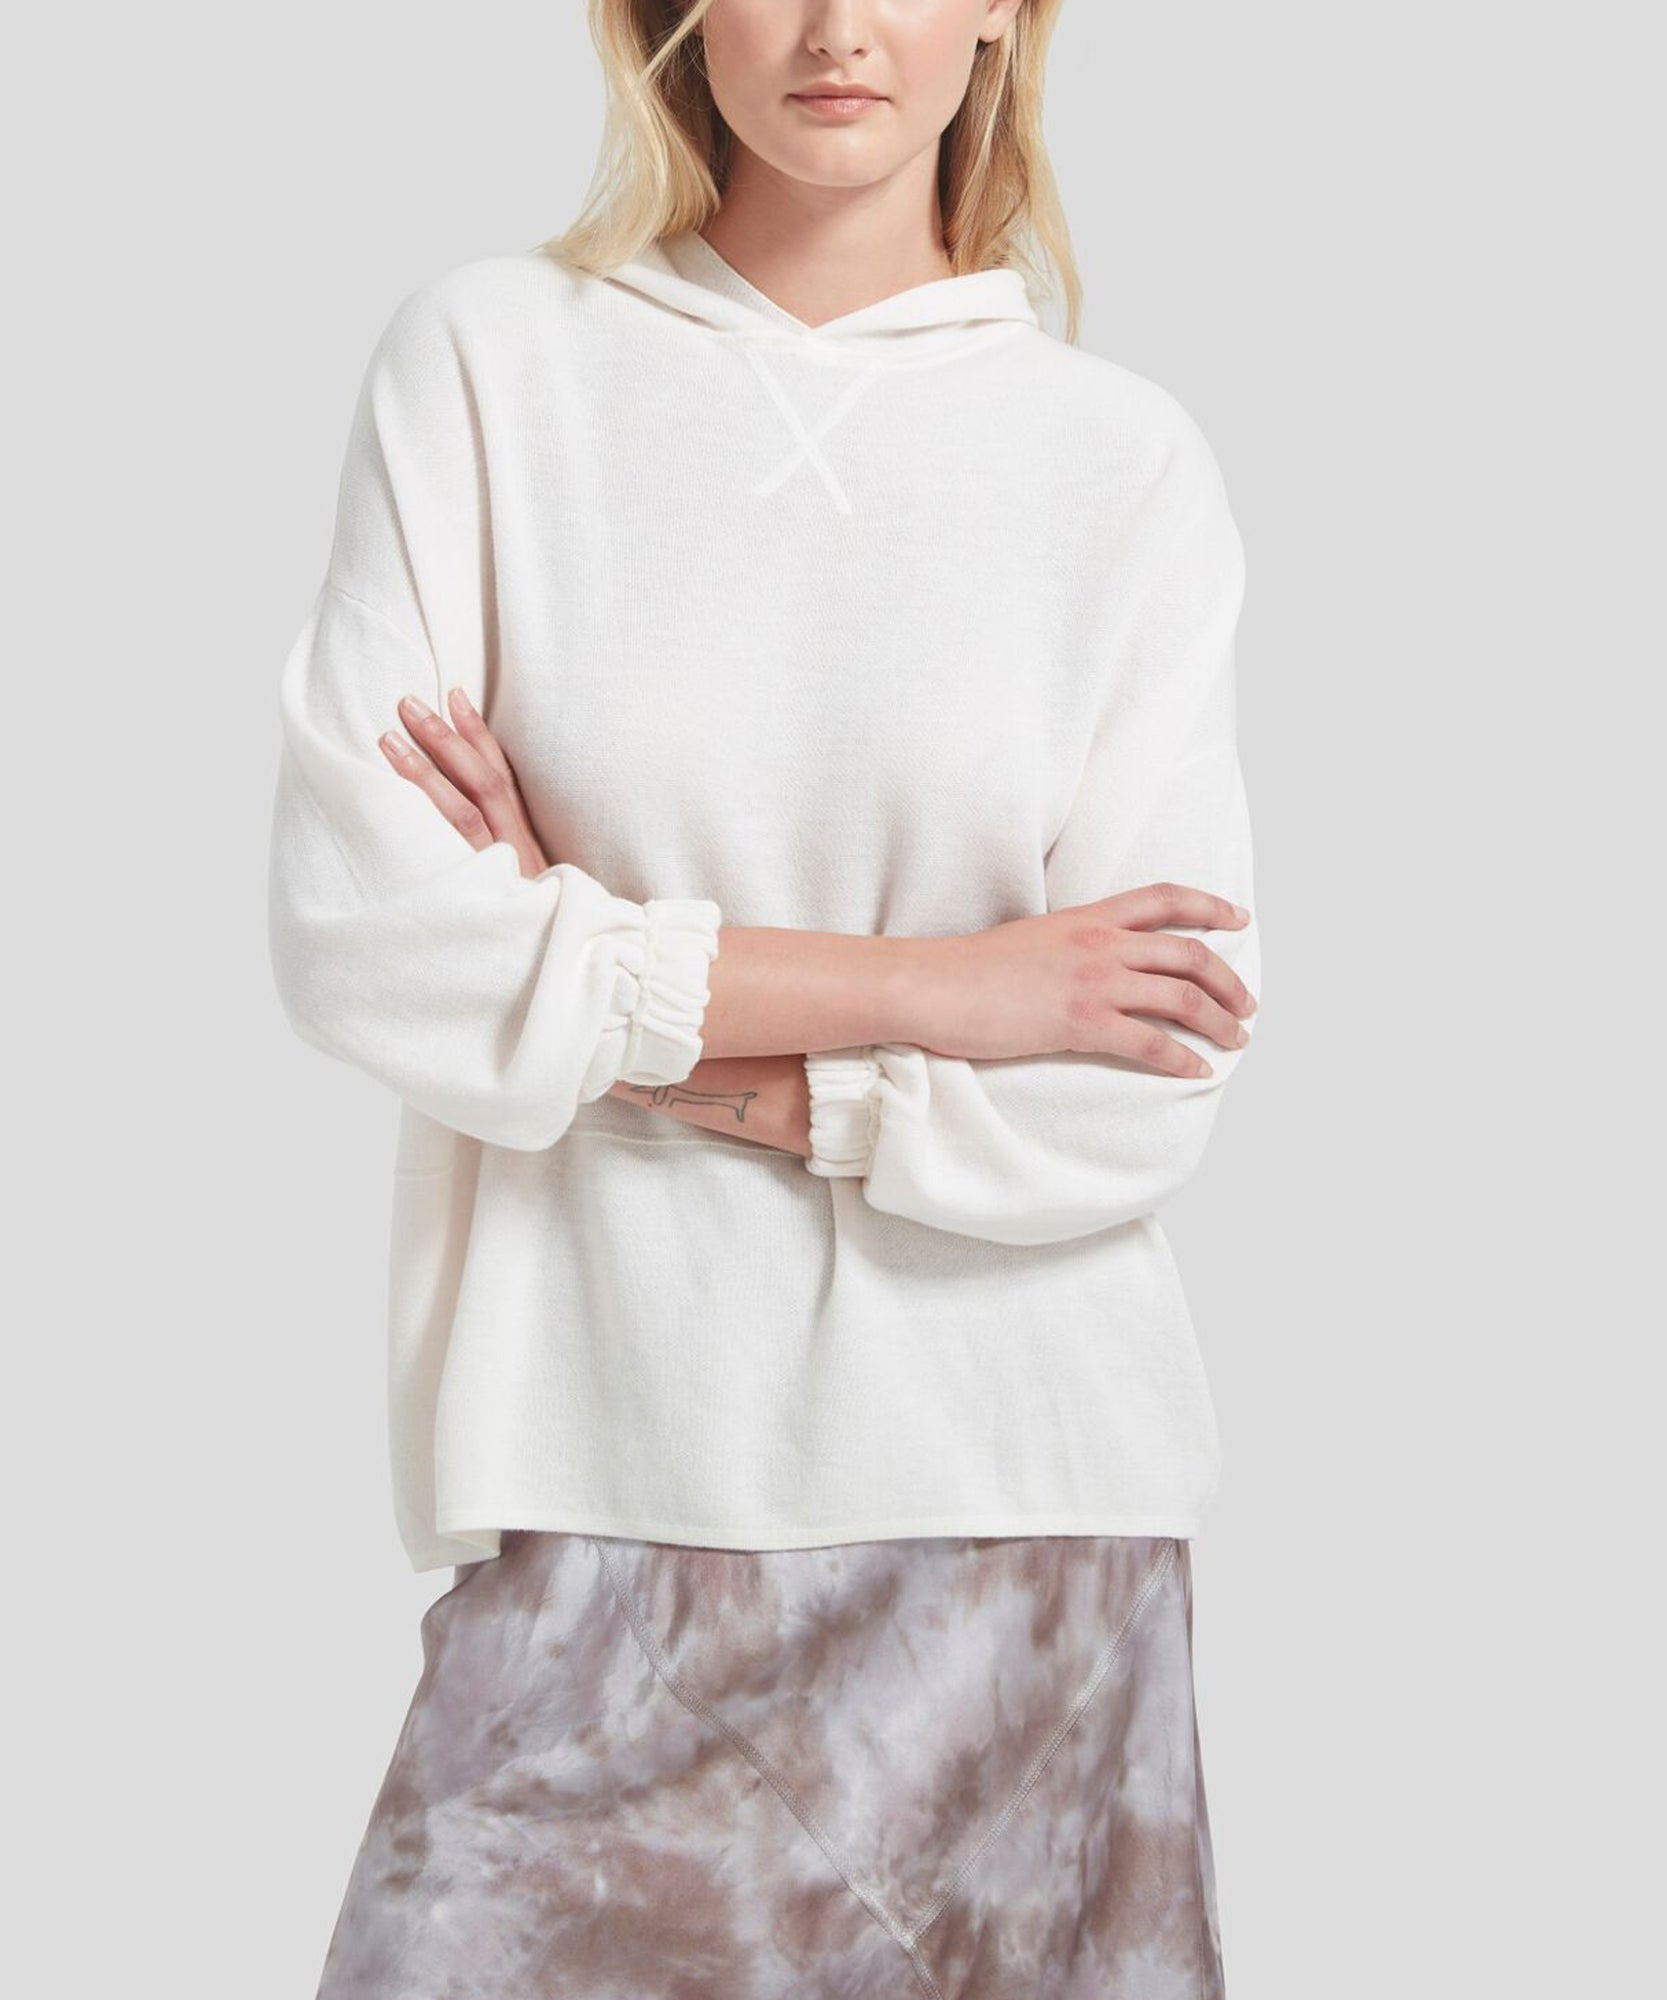 ATM Cashmere Blend Hooded Sweatshirt